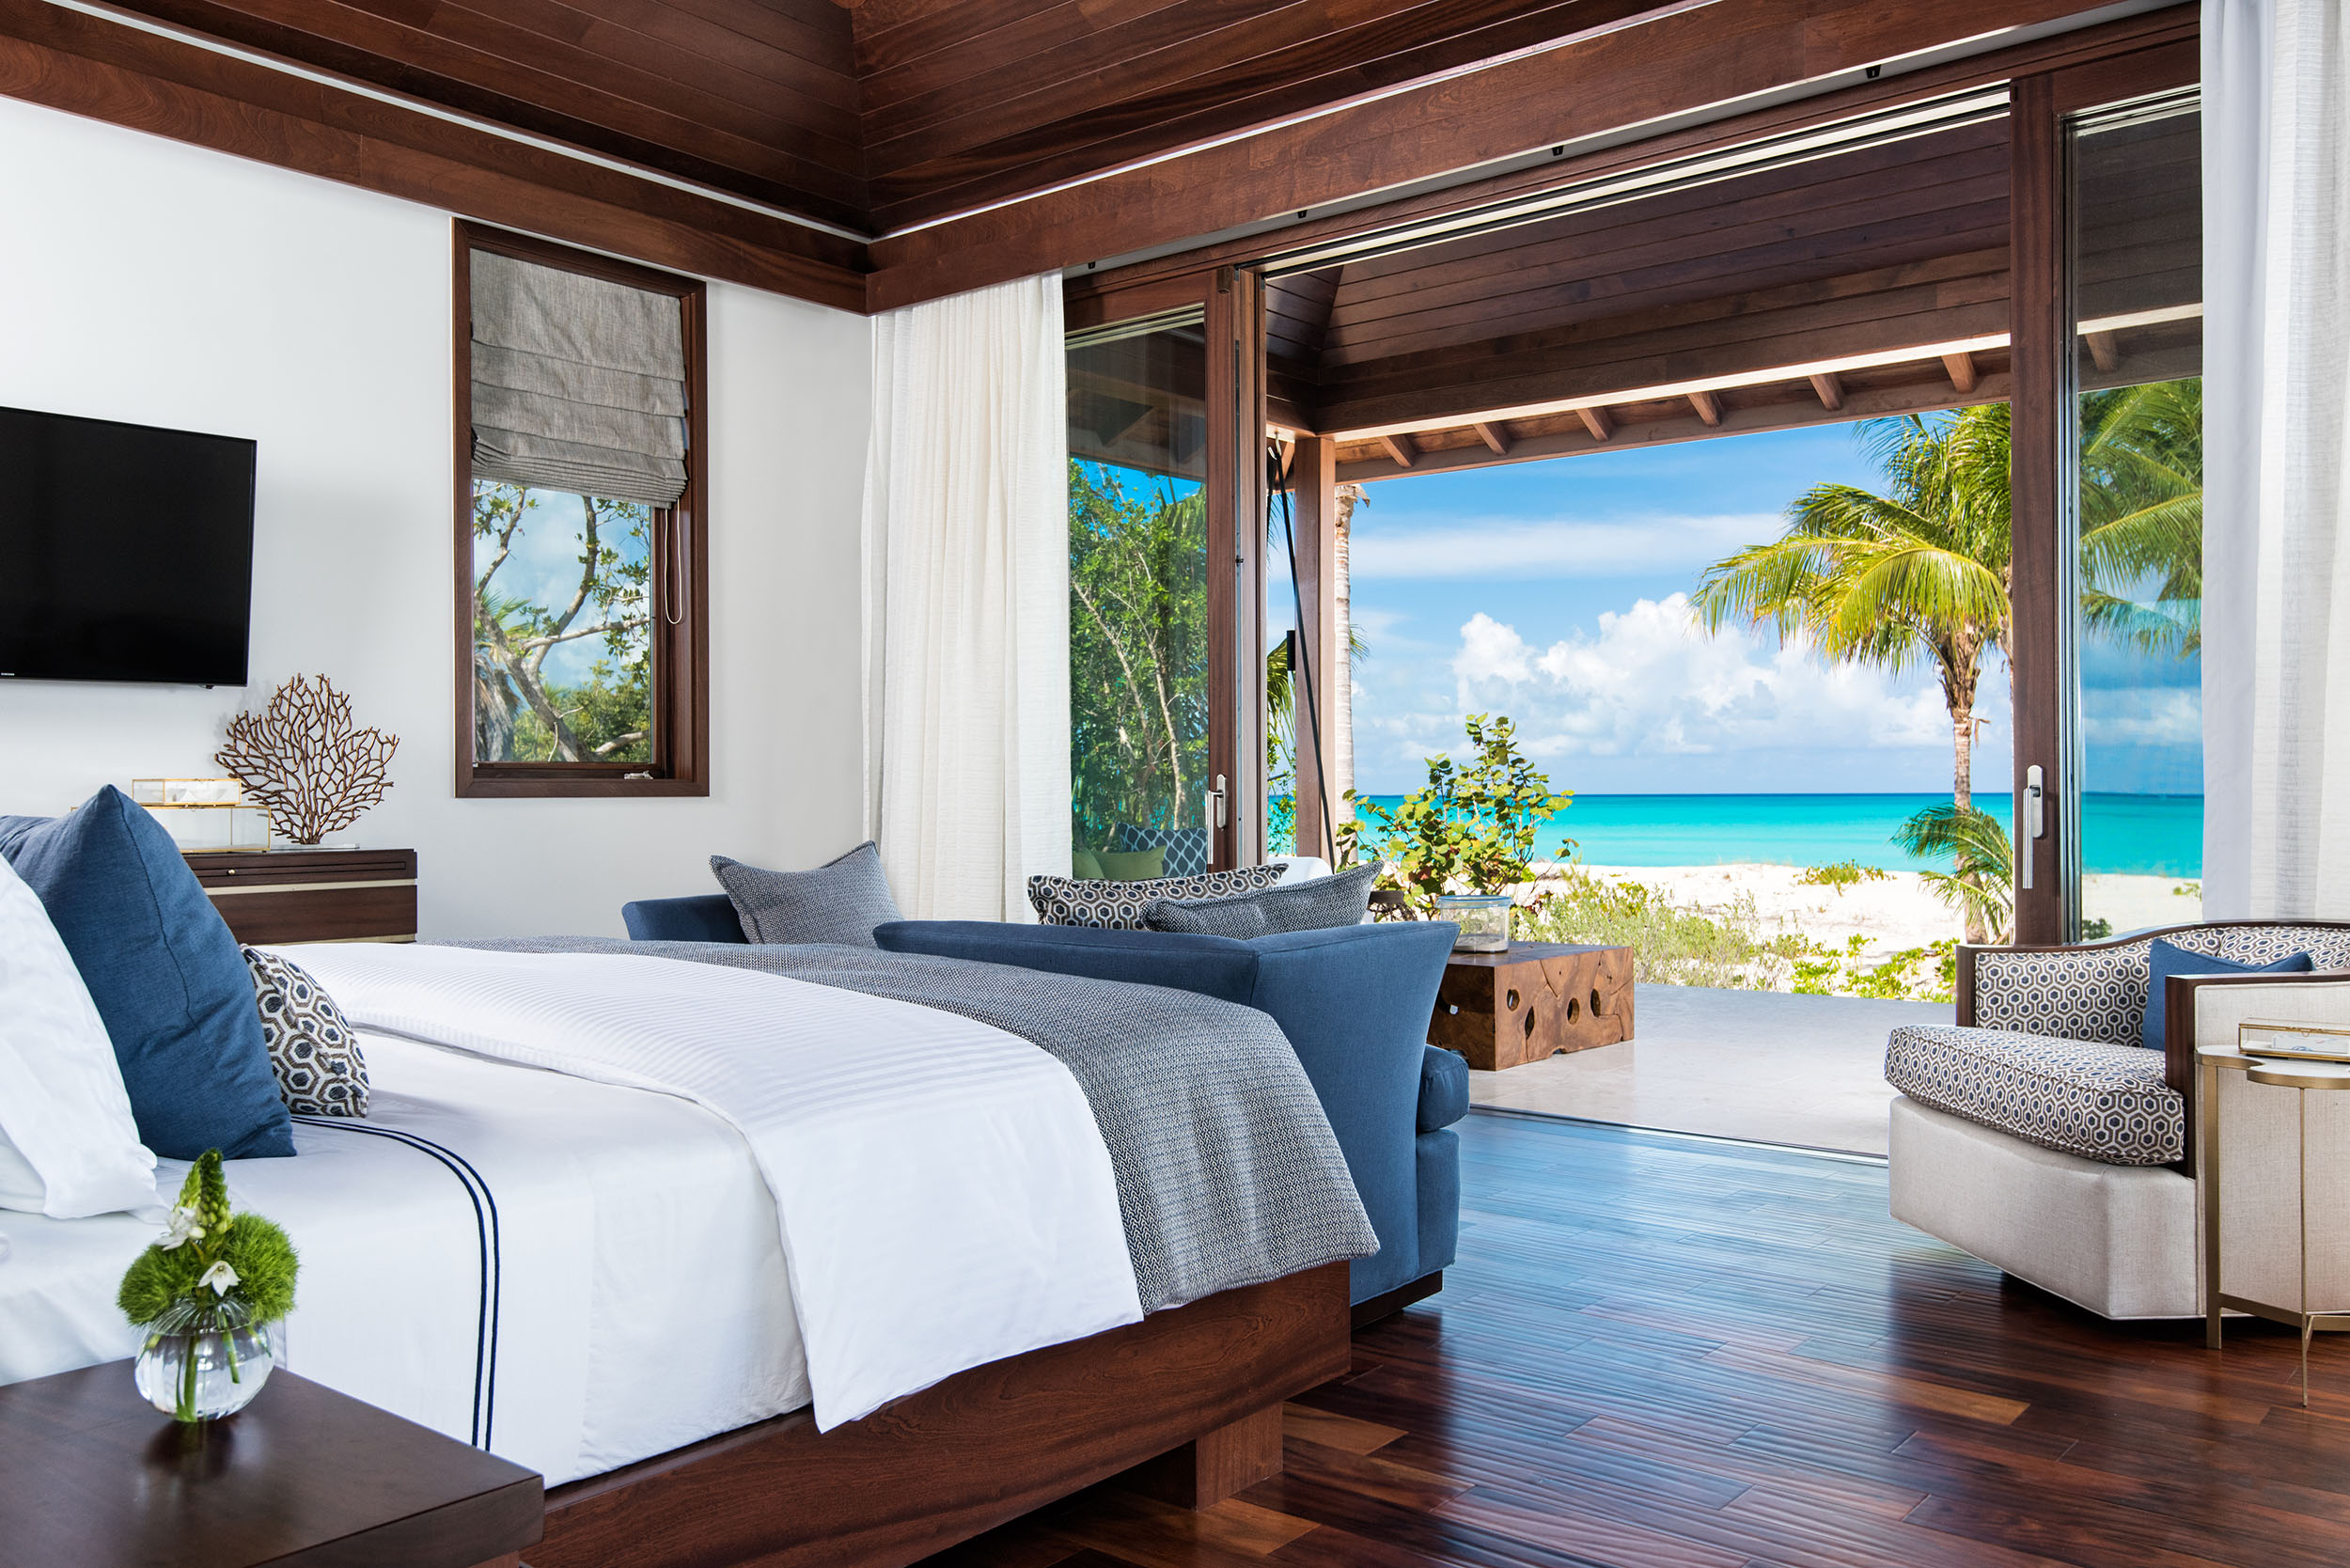 Hawksbill - view of the master bedroom